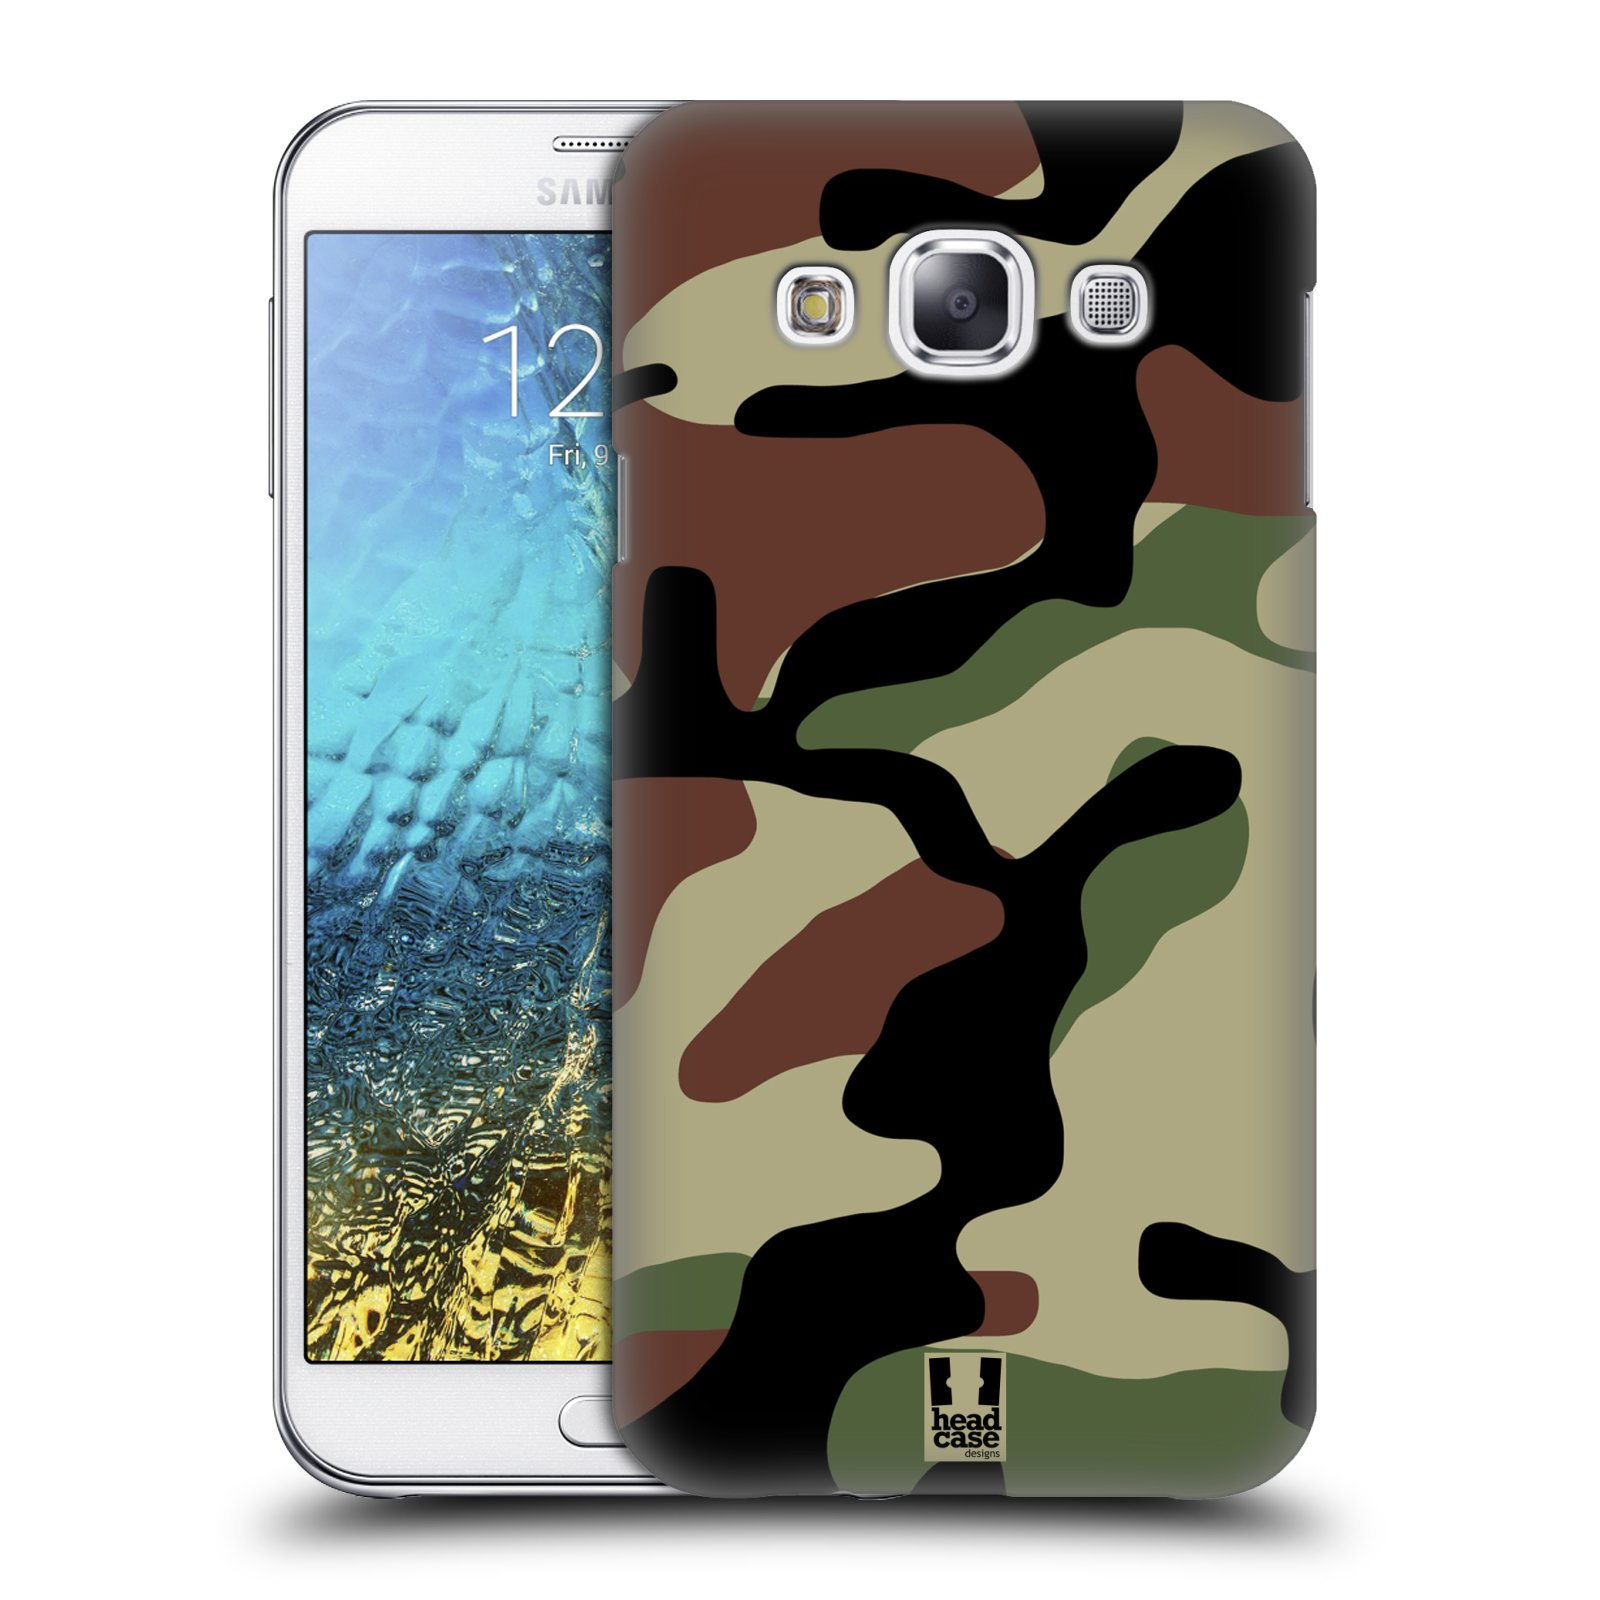 Head case designs military camo hard back case for samsung for Cell phone cover design ideas